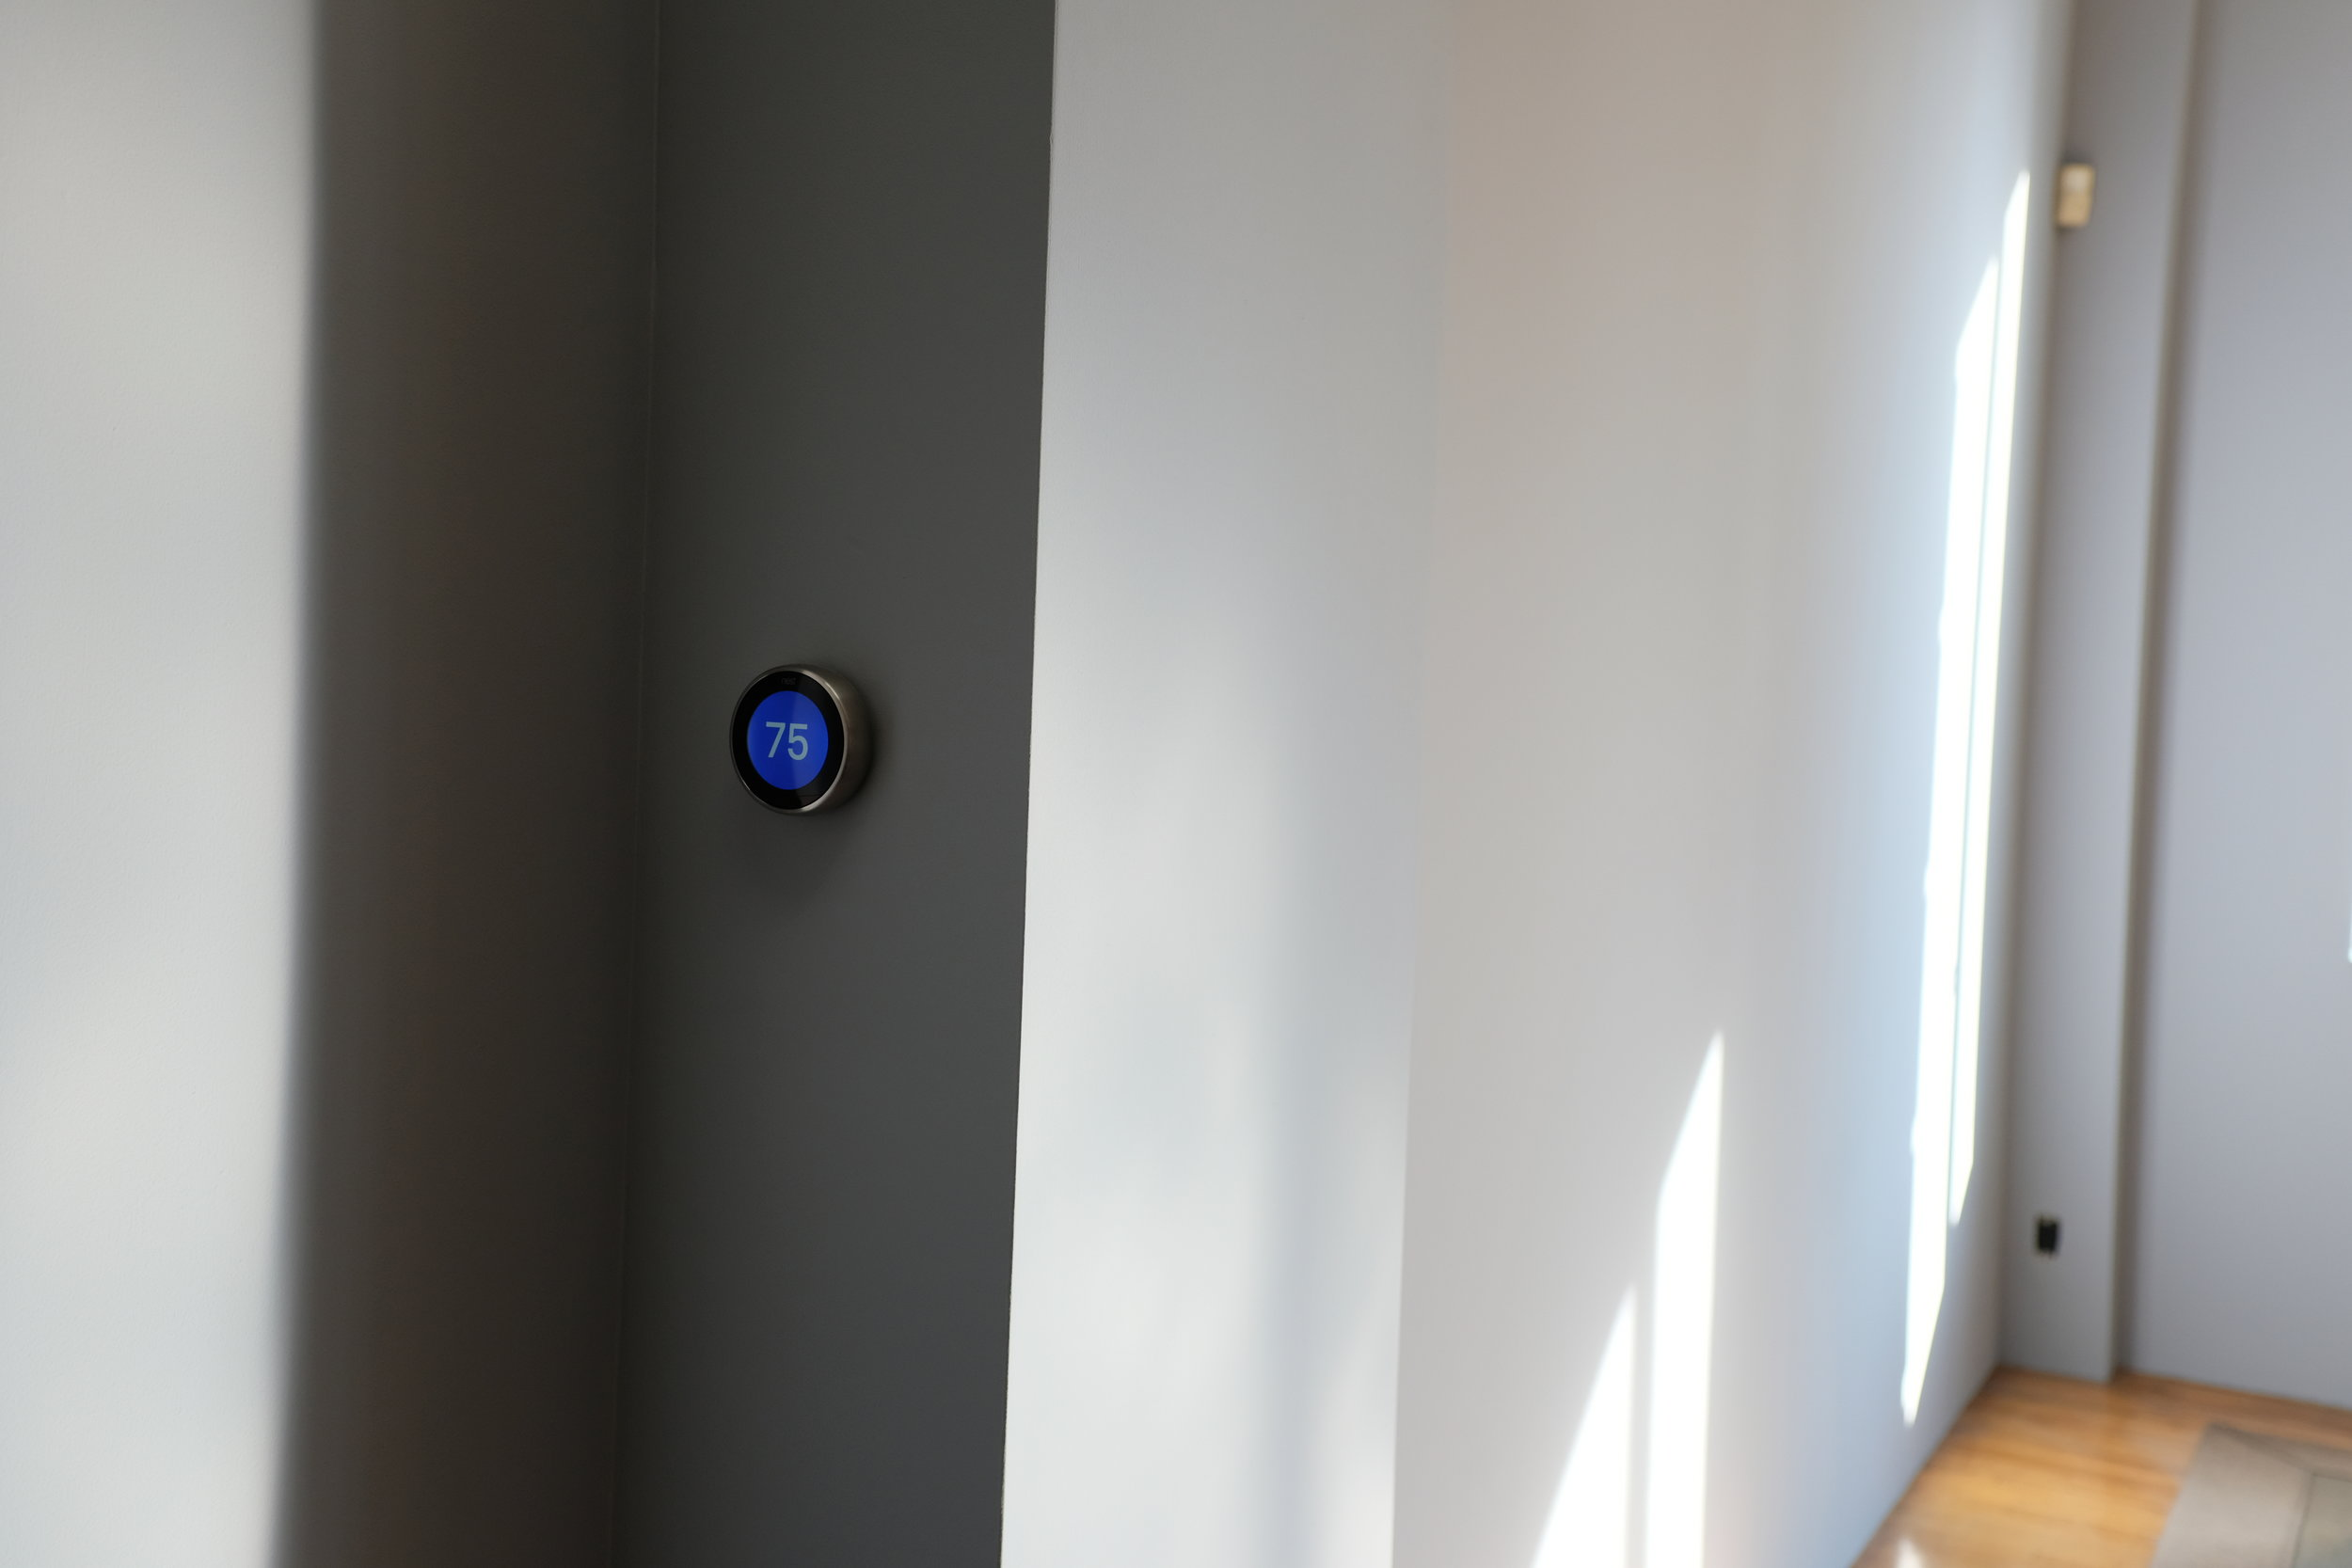 Sleek and discrete Nest thermostat intuitively controls your home's temperature.